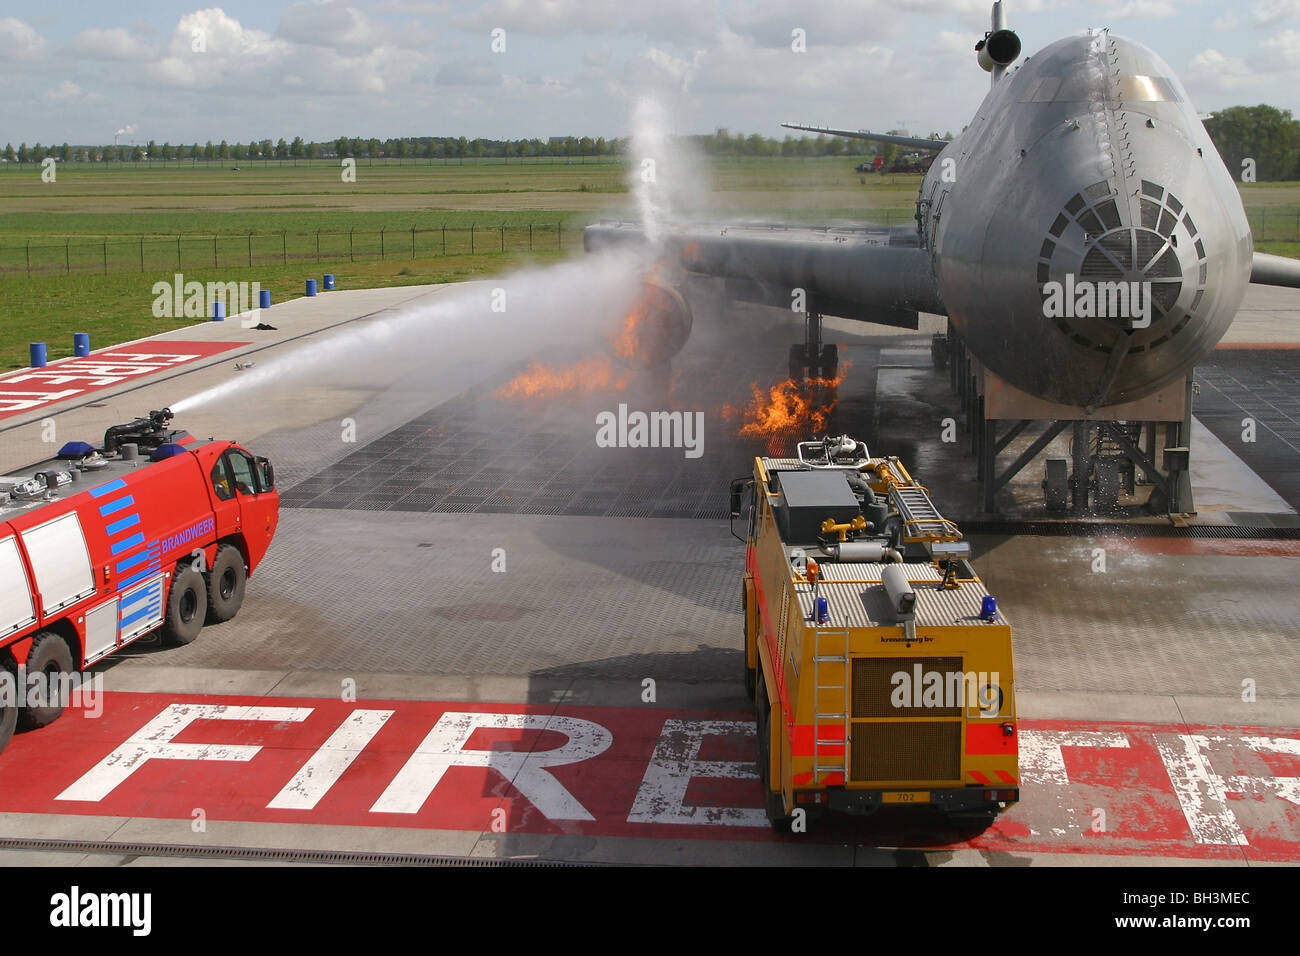 TRAINING DUTCH FIREFIGHTERS WITH AN AIRPLANE FIRE SIMULATOR